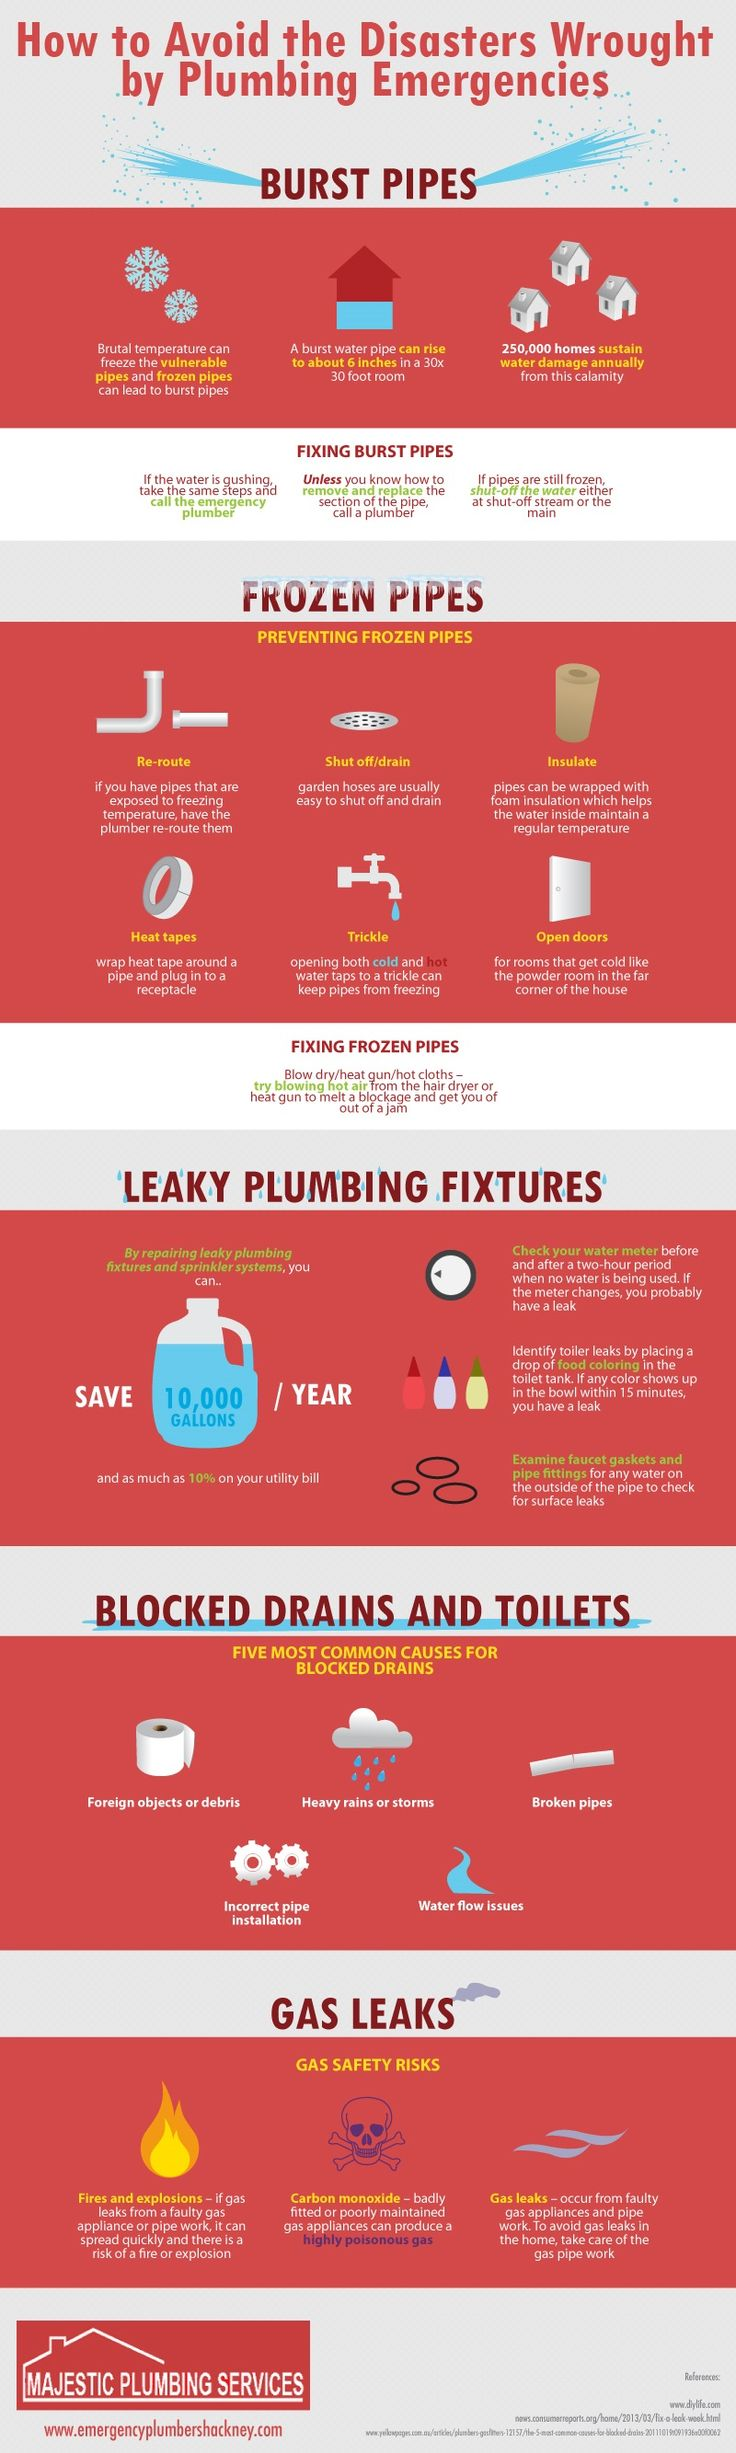 How To Avoid The Disasters Wrought By Plumbing Emergencies brewercommercialservices.com